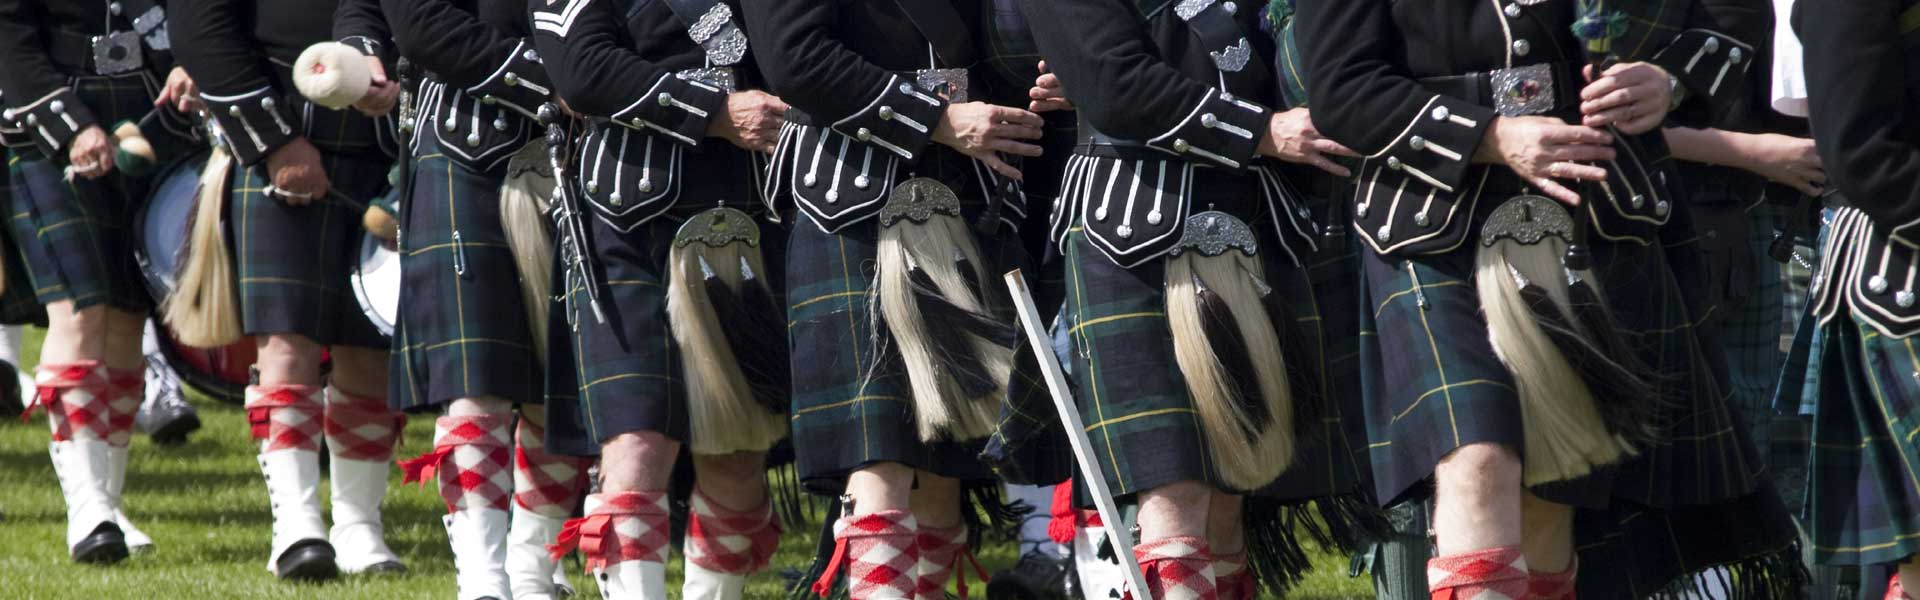 Scotland - Culture and Tradition